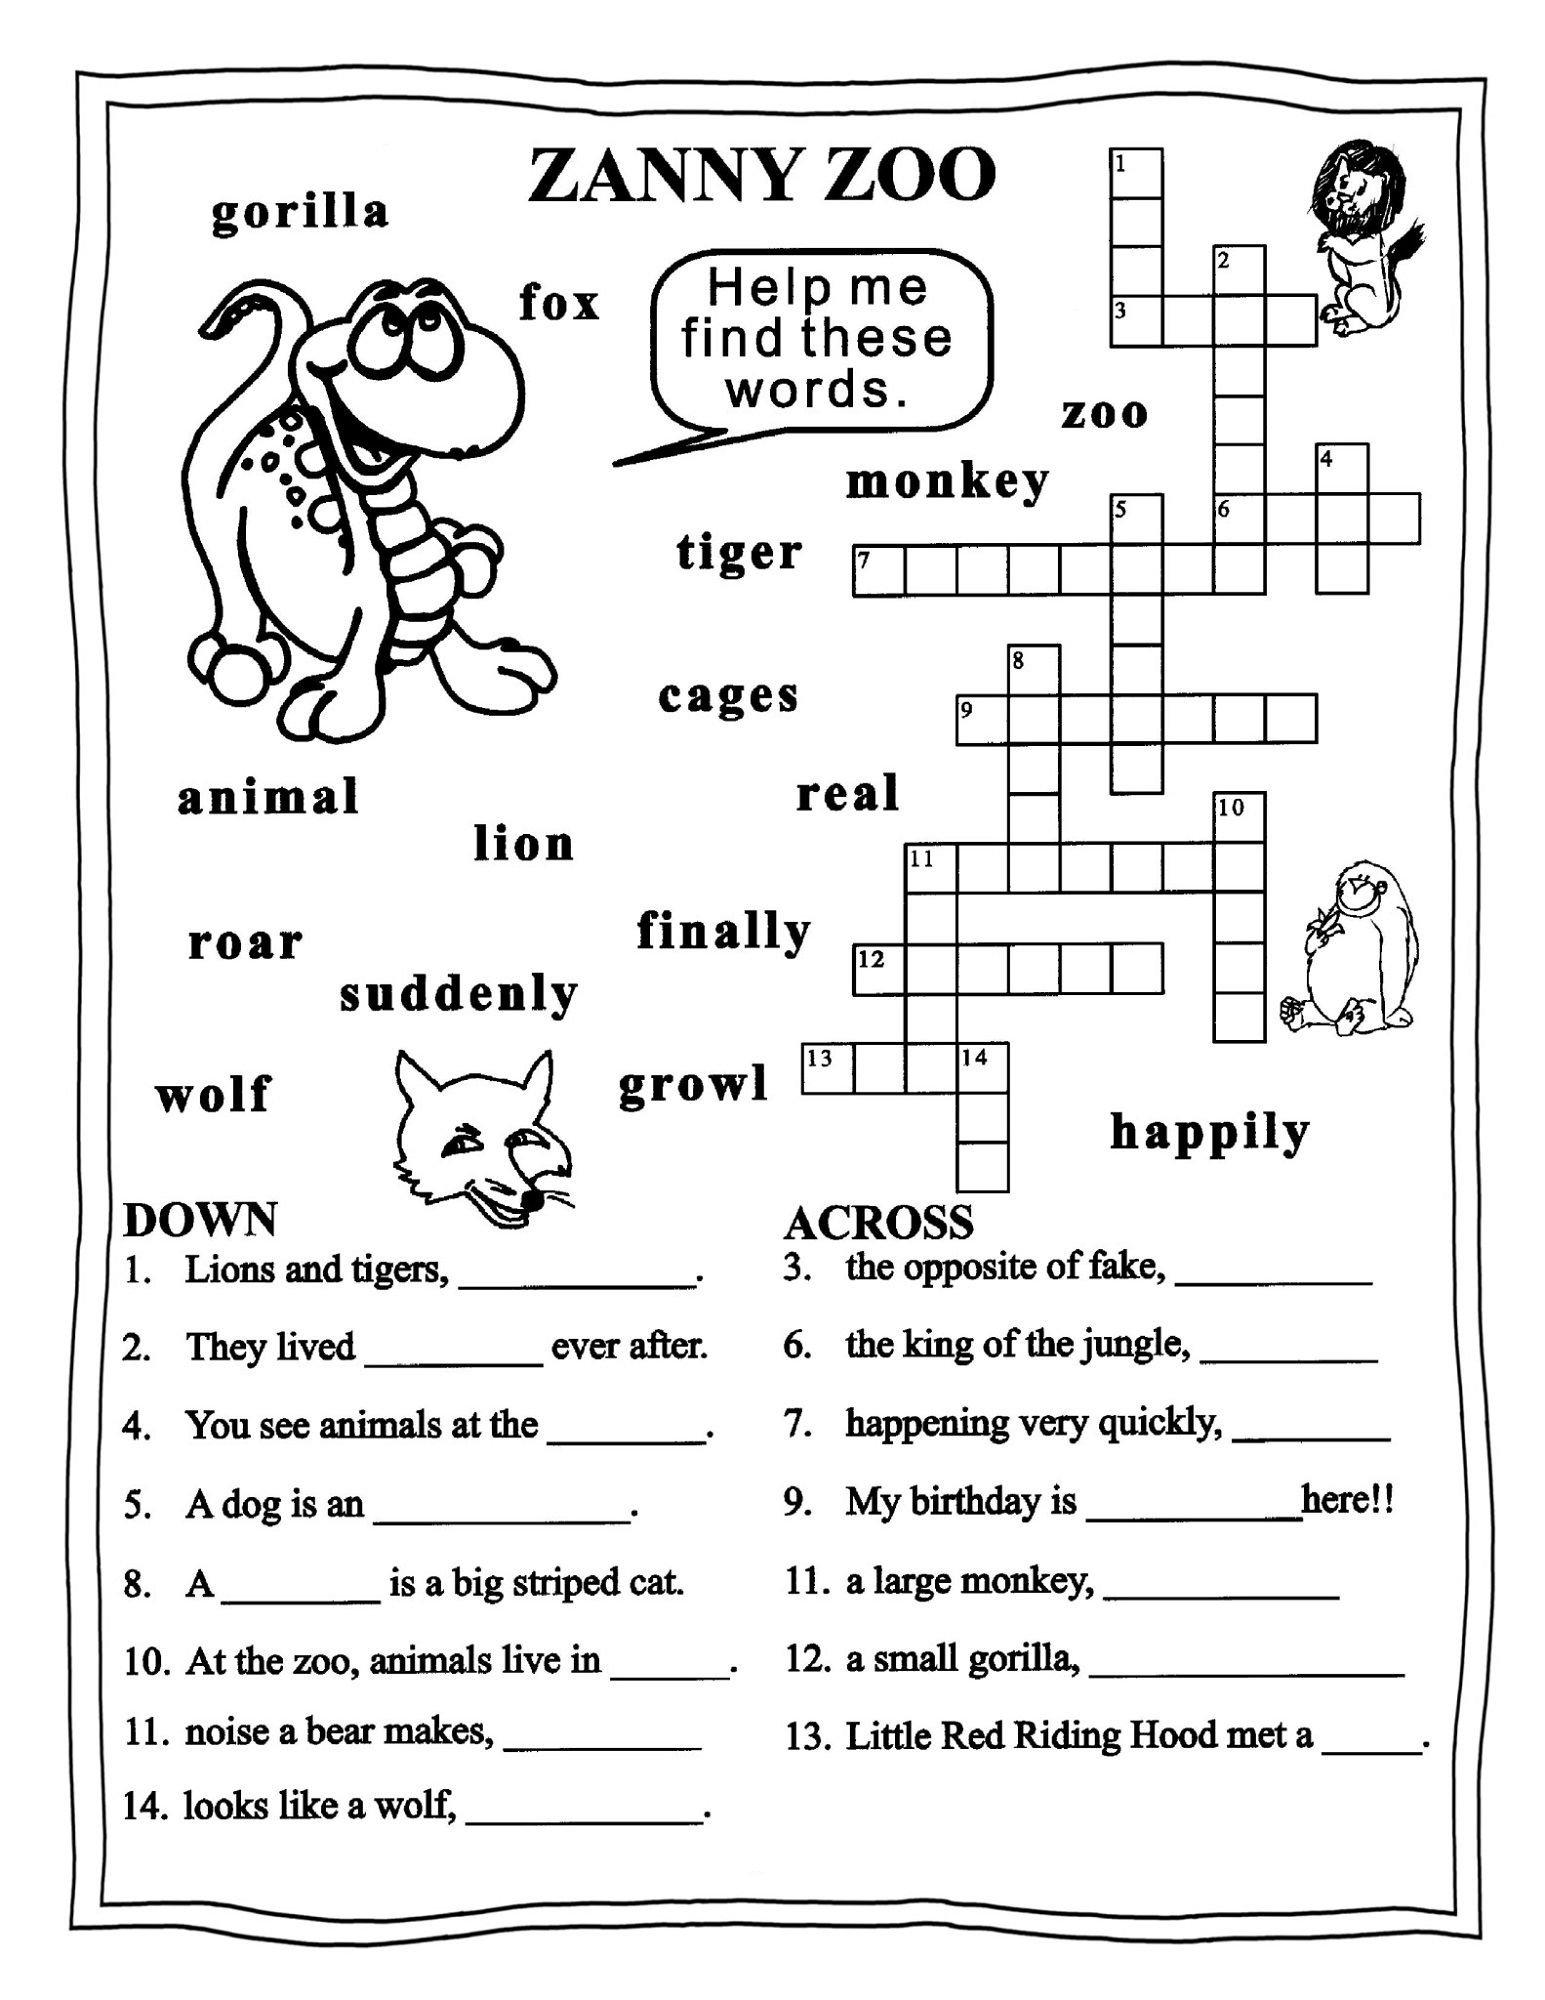 Worksheet English Puzzle